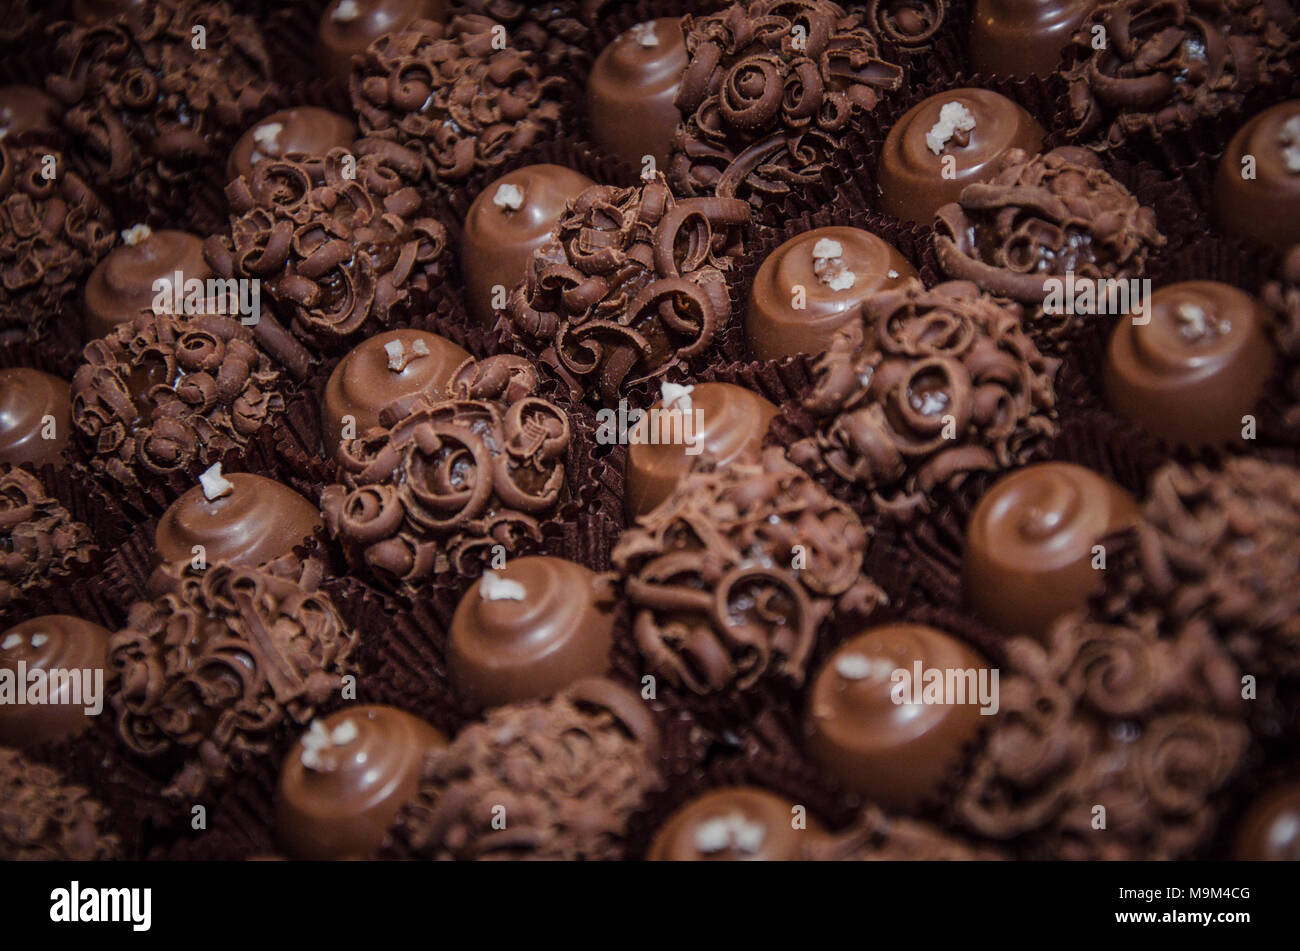 Stupendous Chocolate Truffle On The Wedding Candy Table Stock Photo Download Free Architecture Designs Embacsunscenecom